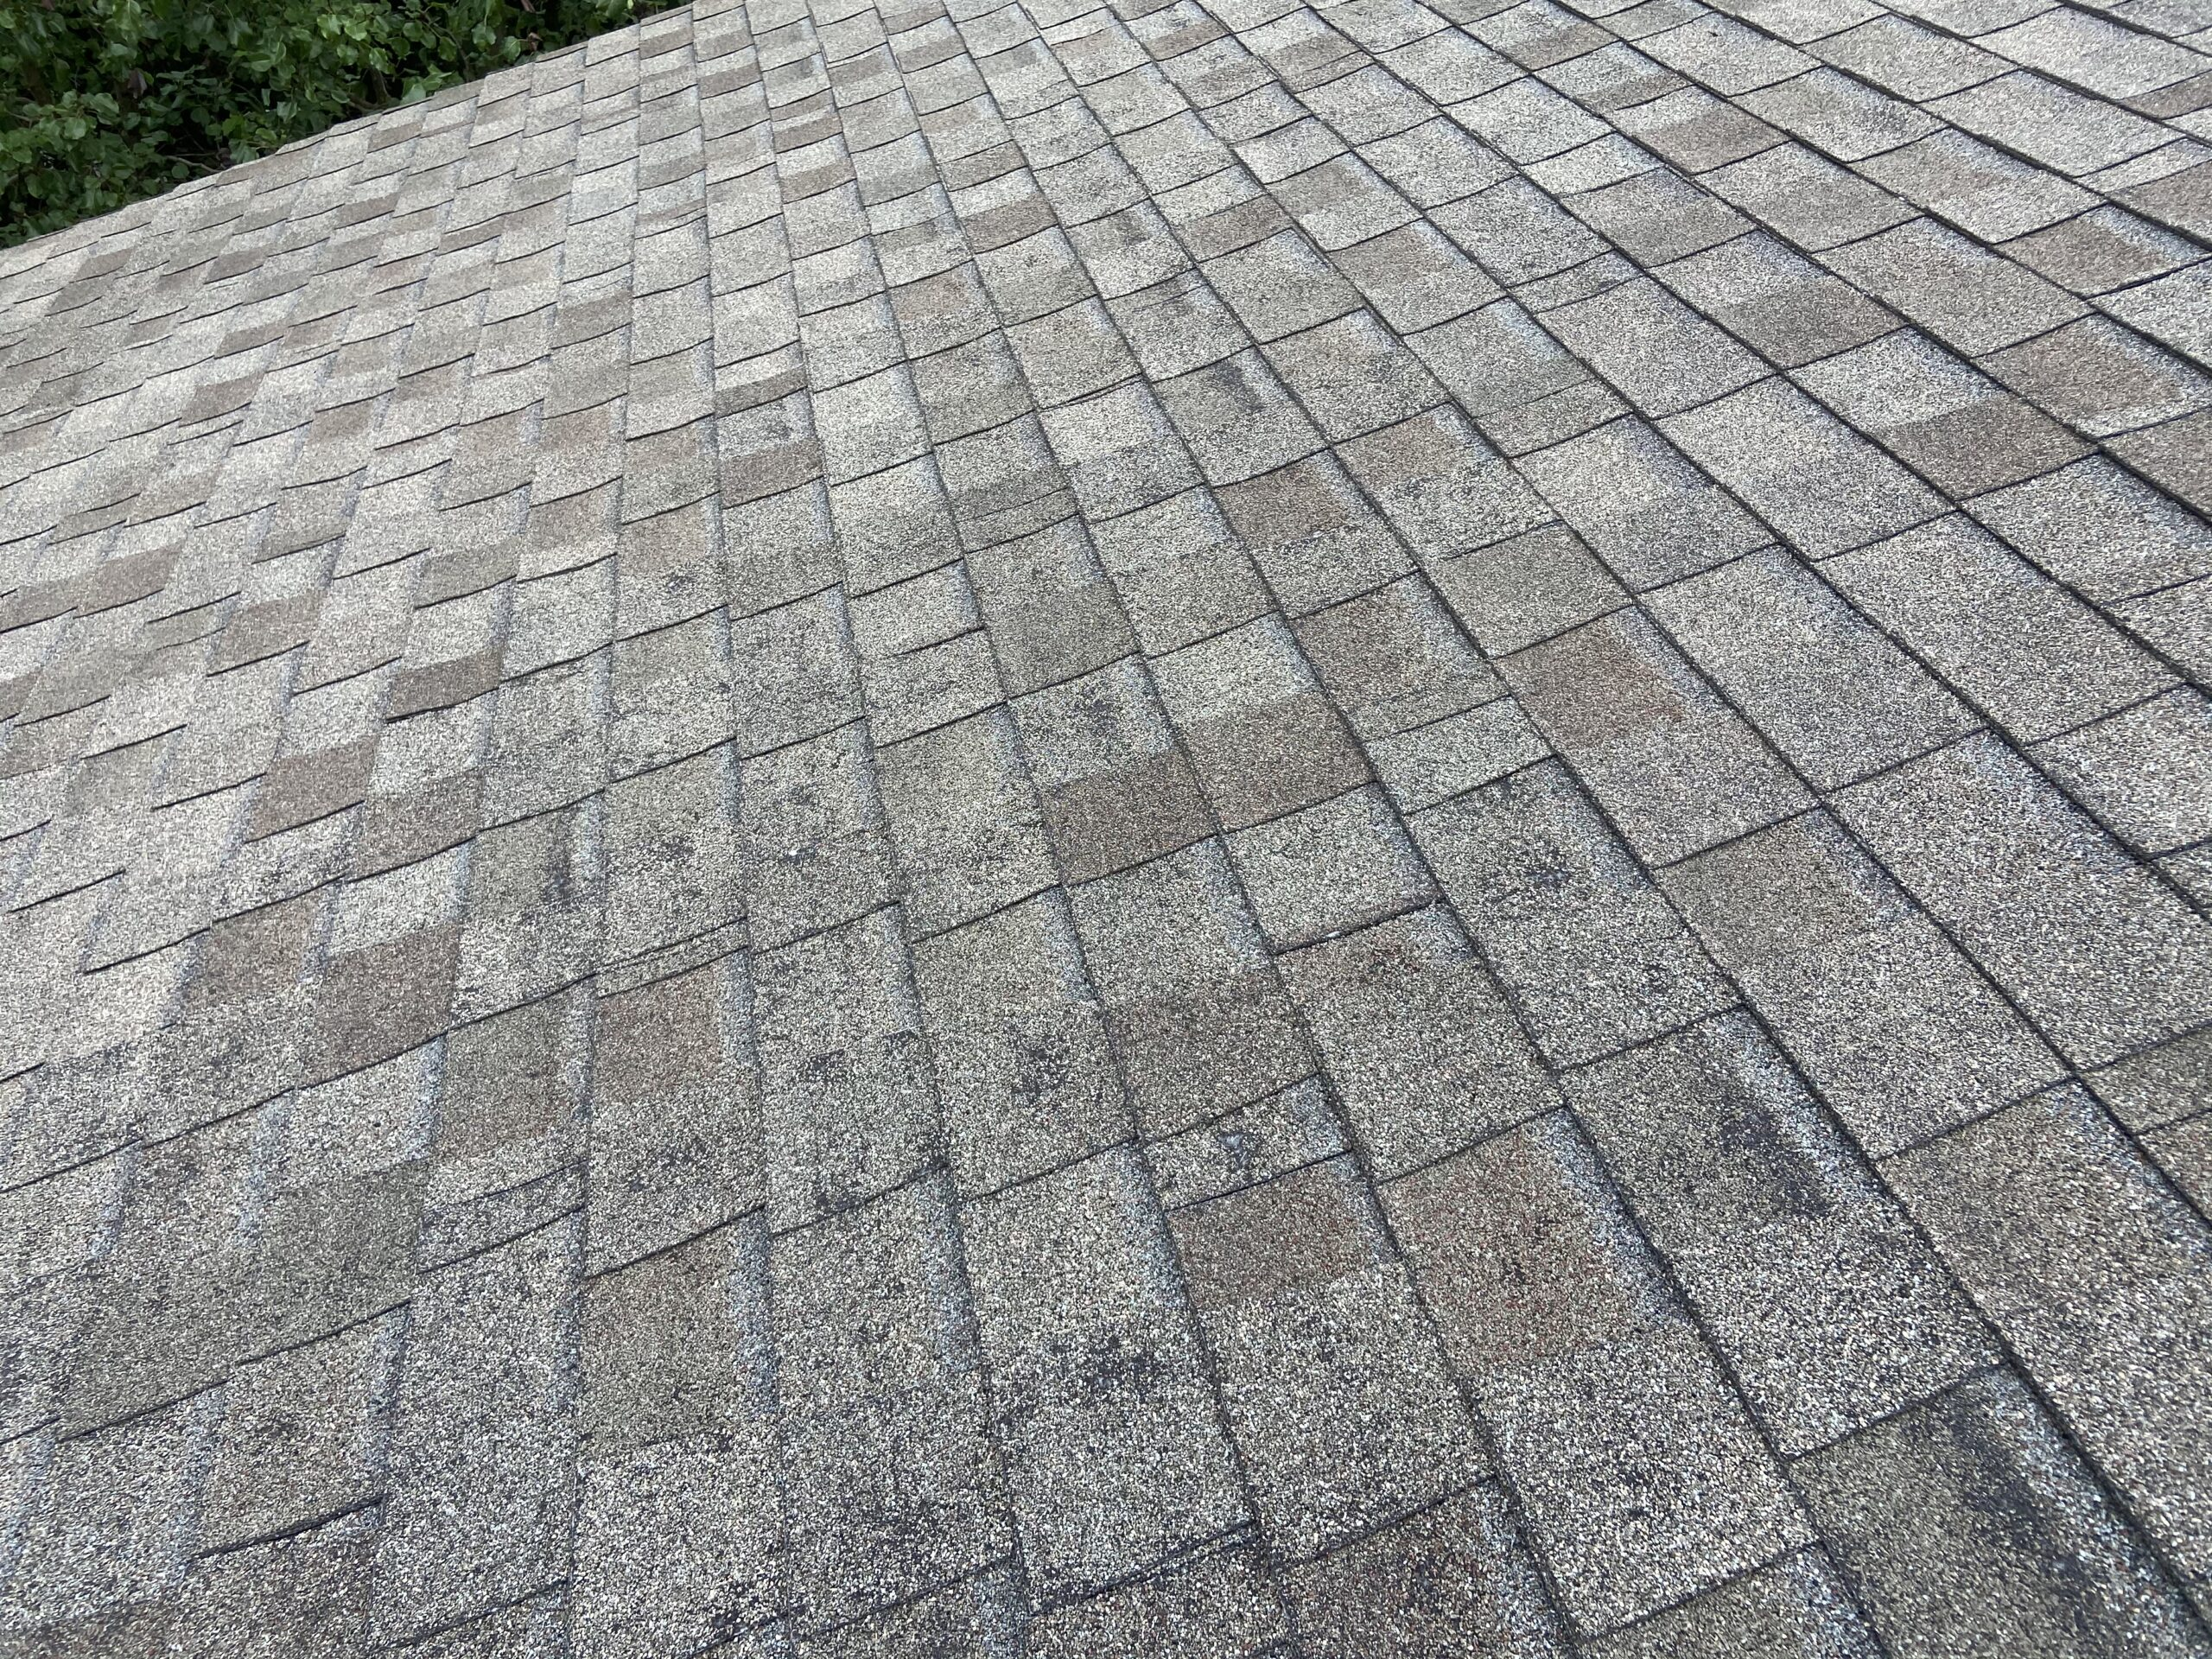 this is a picture of old weathered wood colored shingles that are blistering and in failure